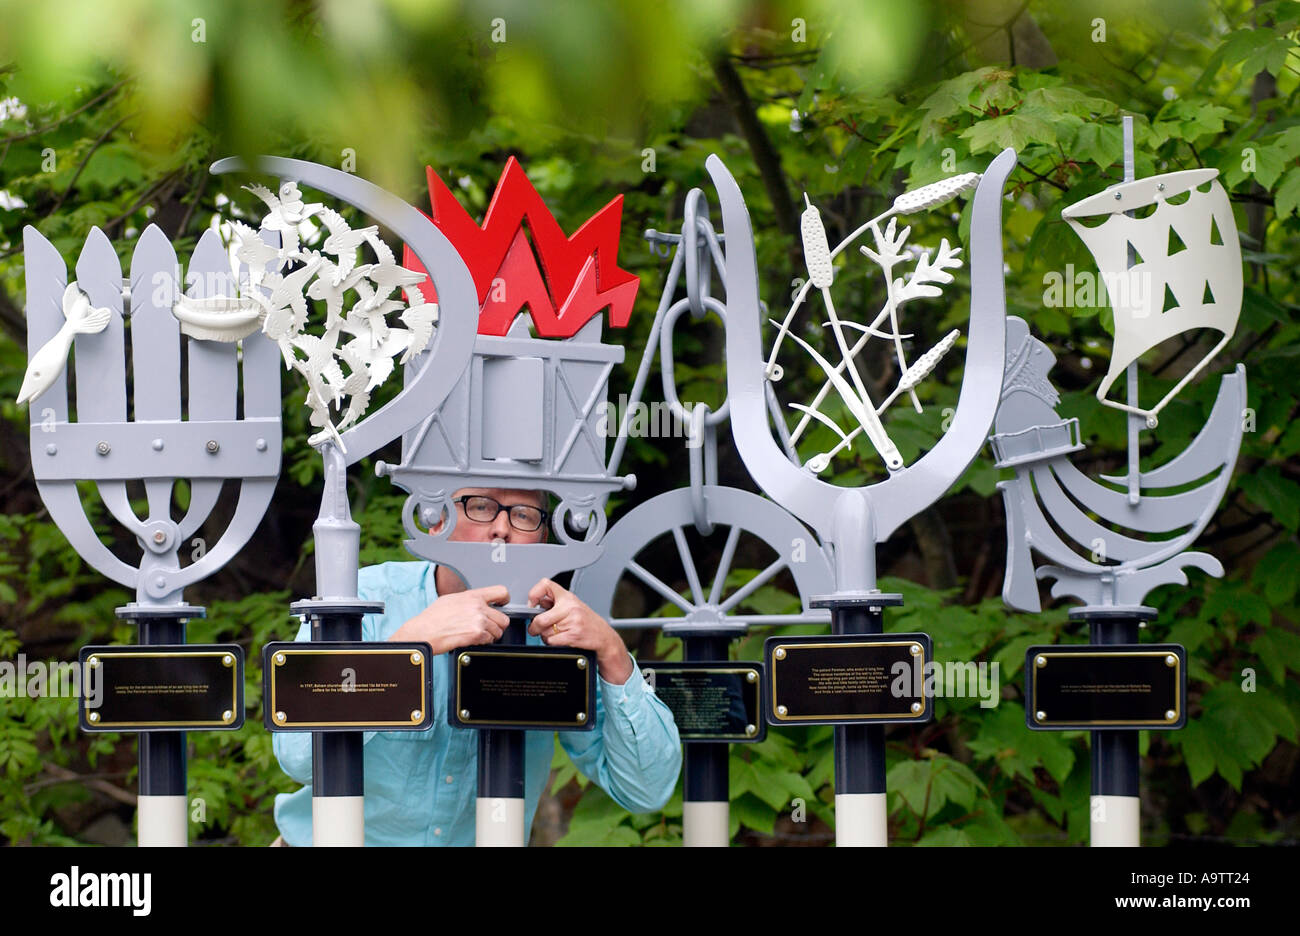 A sculptor with a series of Waymarkers for footpath junctions, commemorating local historical events. - Stock Image